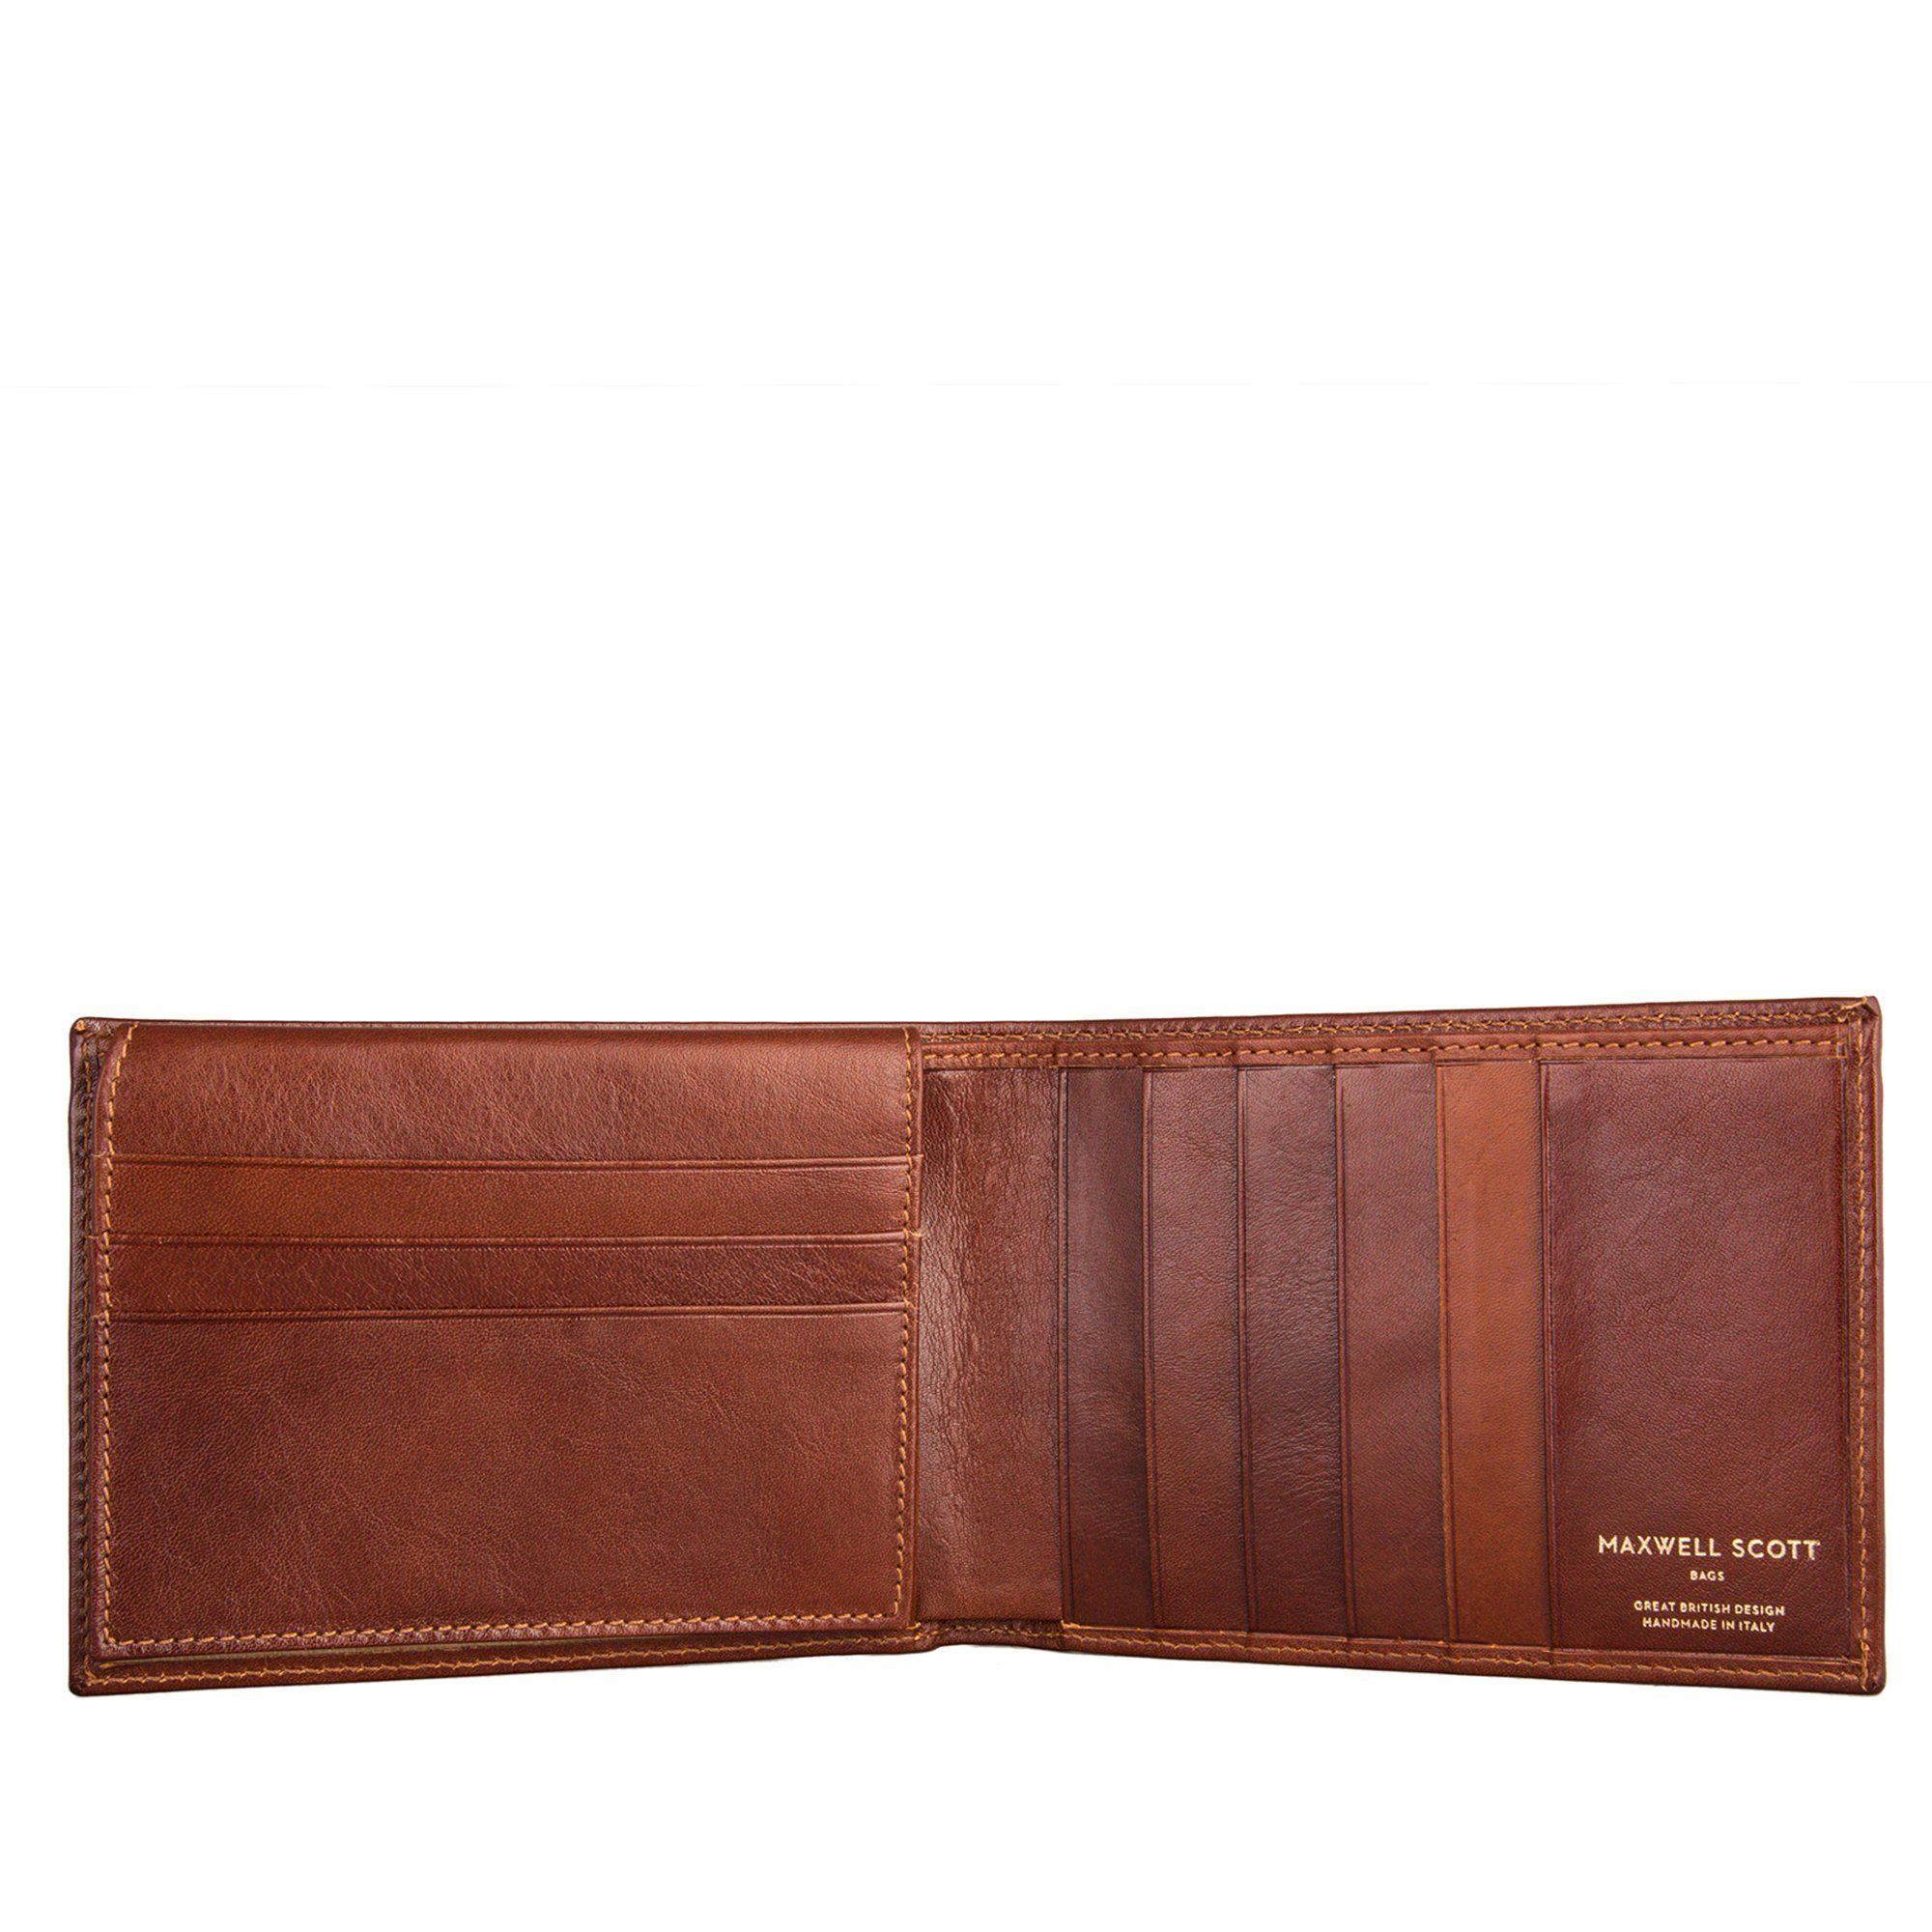 Maxwell Scott® Luxury Tan Leather Tri Fold ID Credit Card Wallet - One Size (The Gallucio)